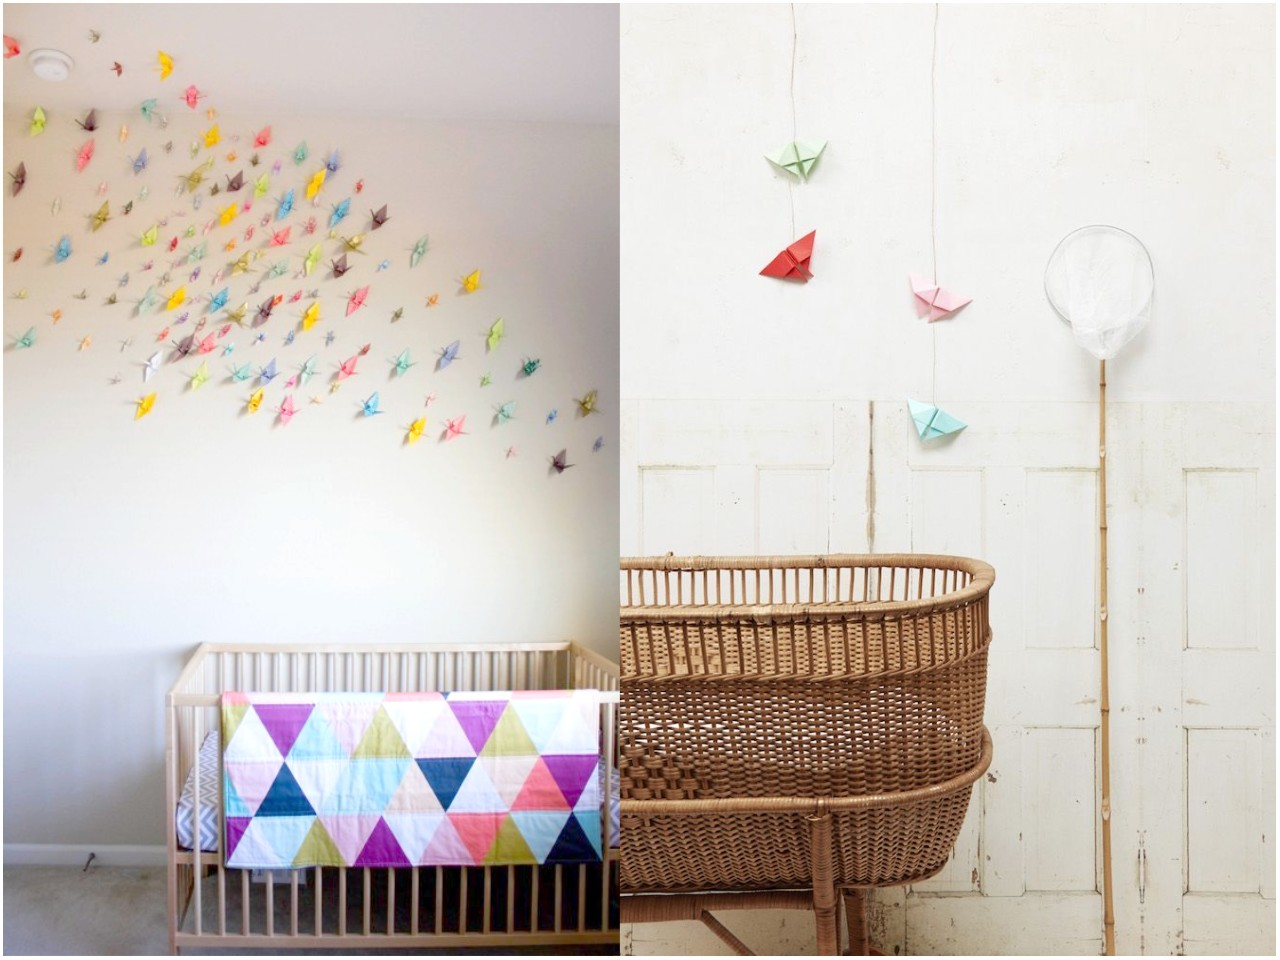 12 ideas econ micas para decorar habitaciones infantiles for Decorar jardin barato